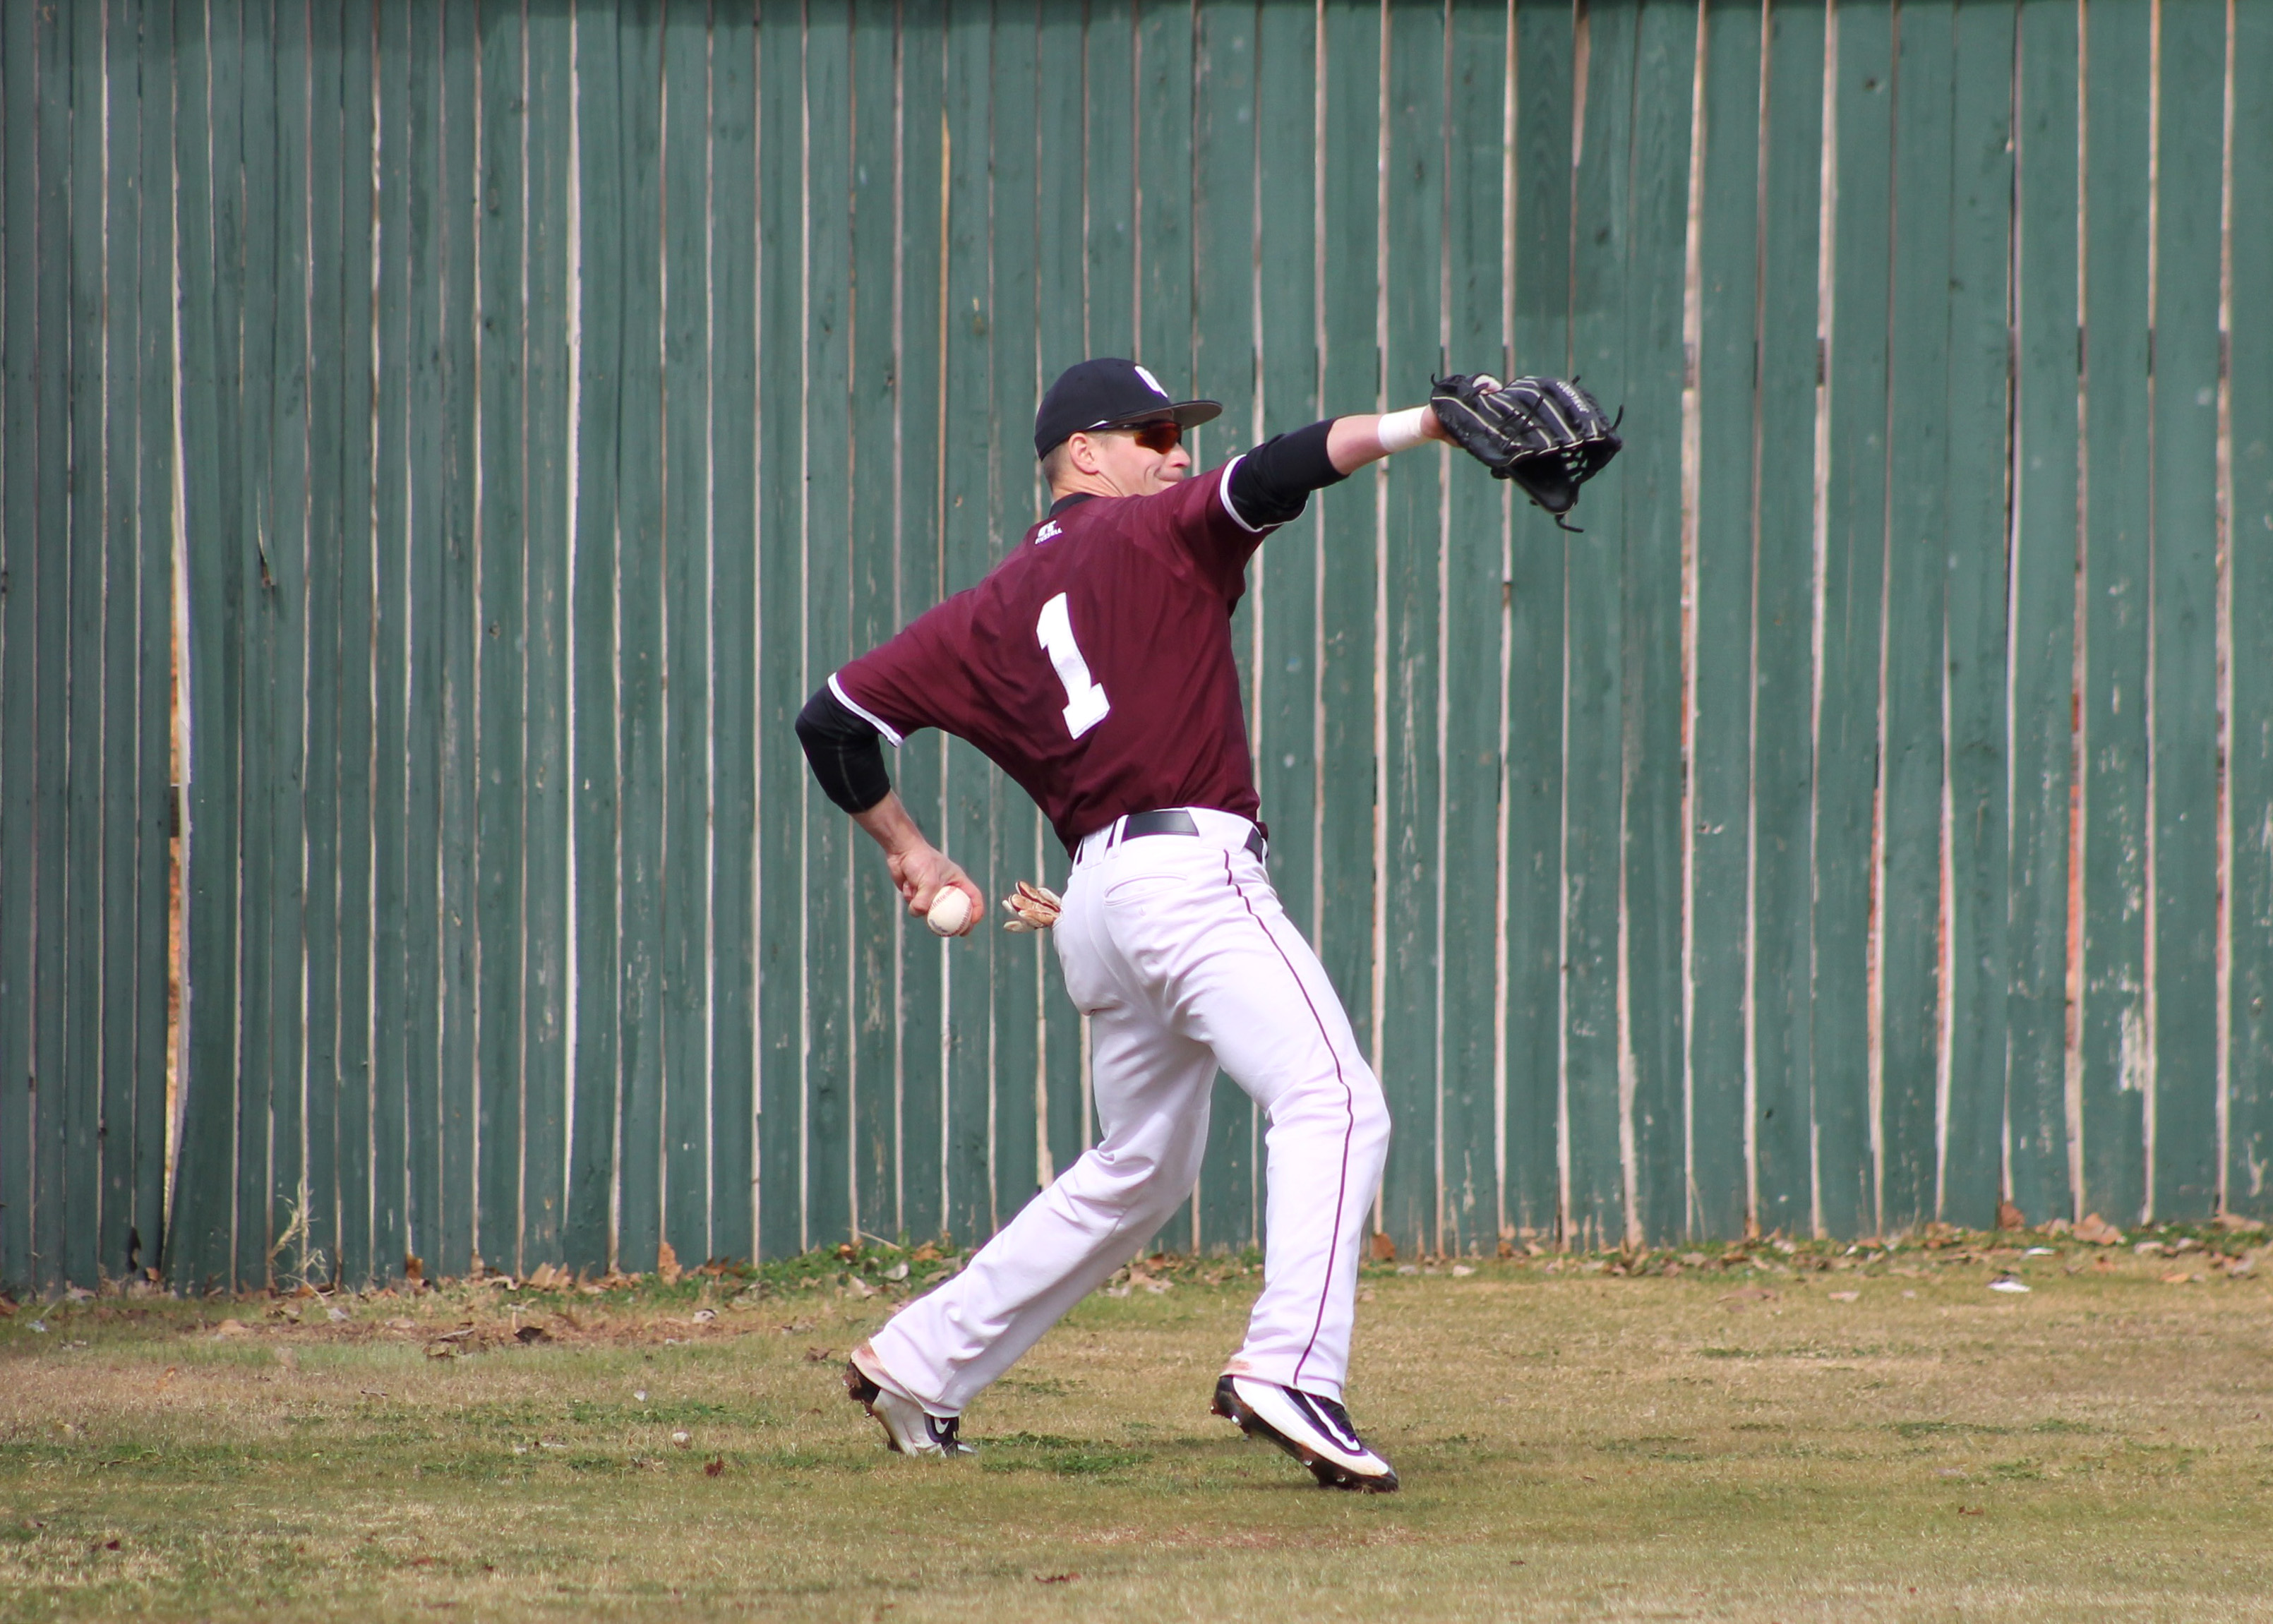 Kyle Lacy throws a hit infield in the game against West Texas A&M on Feb. 26-27. Photo by Allyson Hazelrigg.